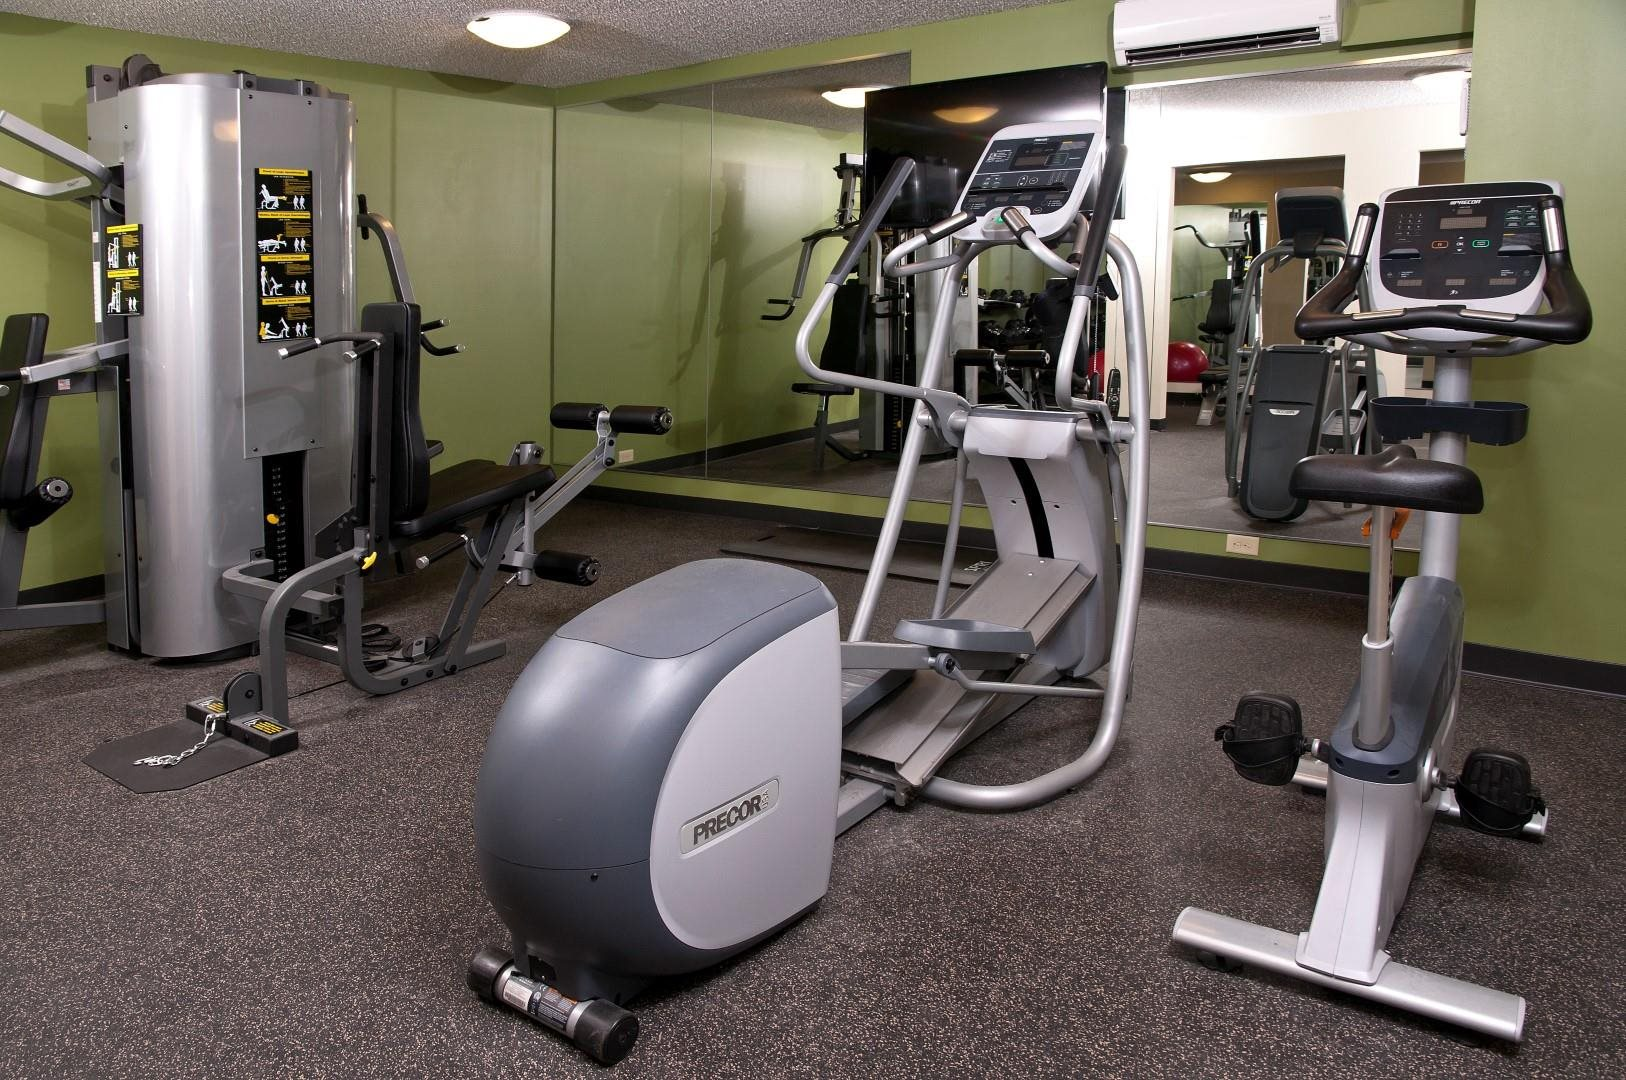 Cardio Equipment in Fitness Room at 2800 Girard